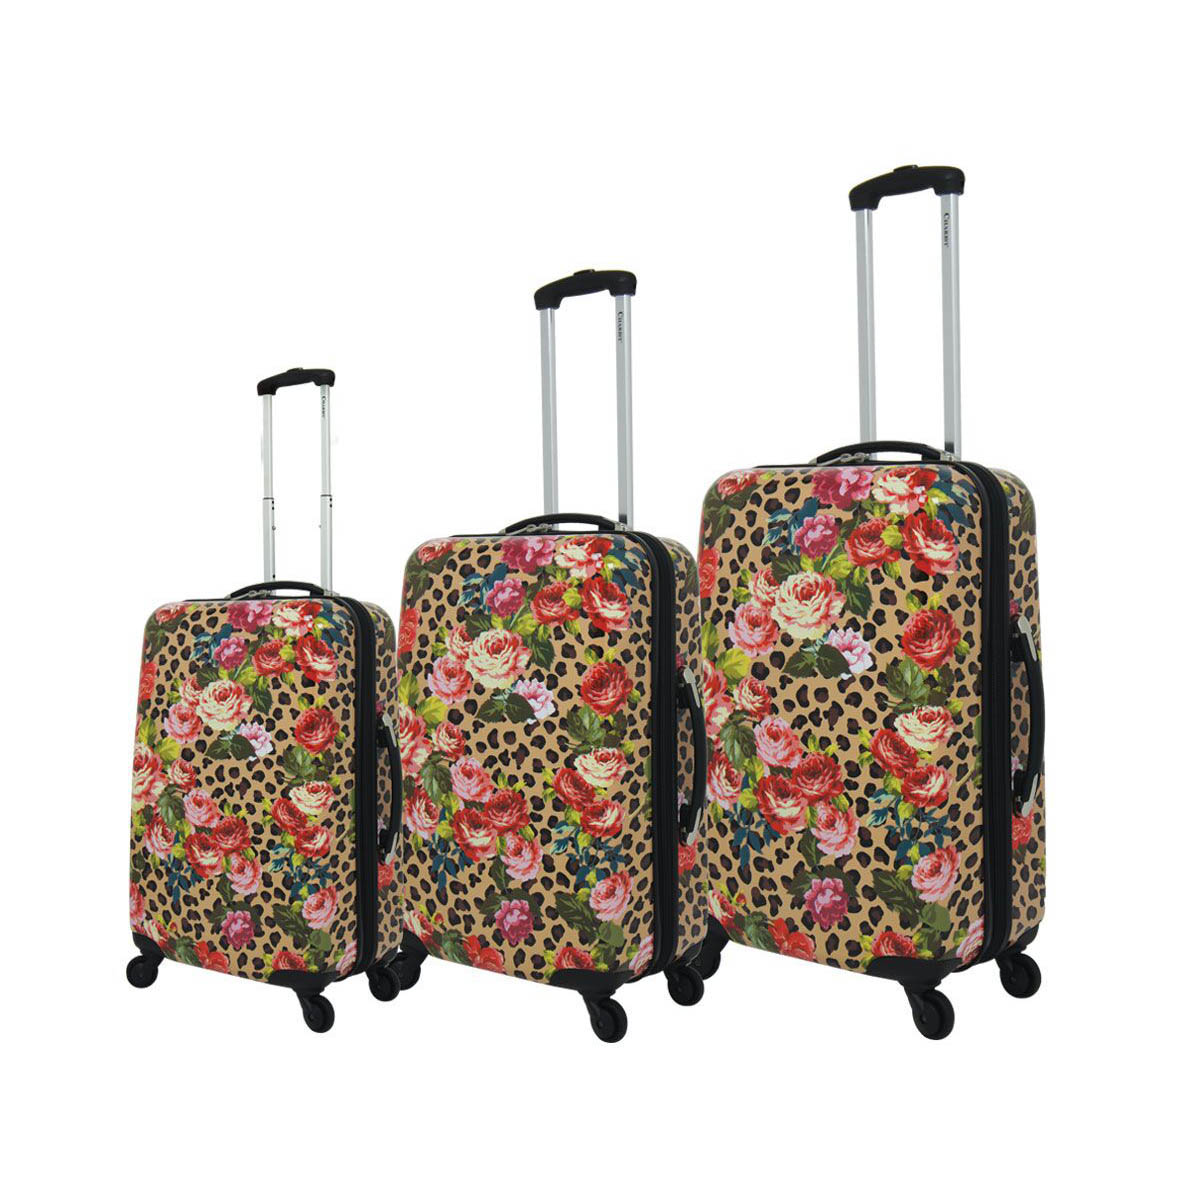 Chariot Leopard Flowers 3-Piece Hardside Upright Spinner Luggage Set